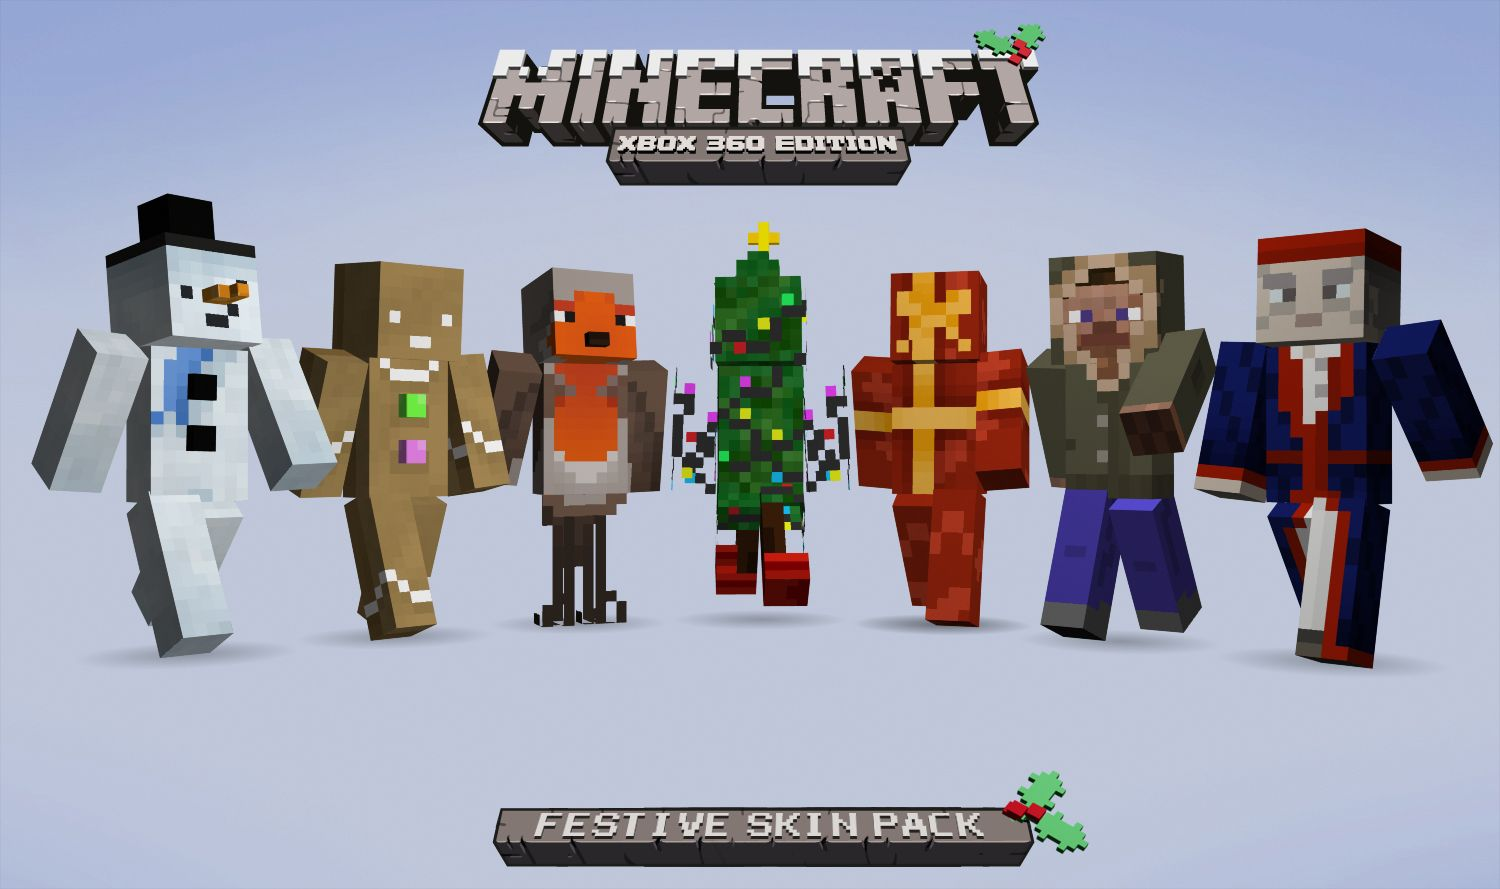 82d9a3f1acbde252c129357965f891dc - How To Get A Skin On Minecraft Xbox One